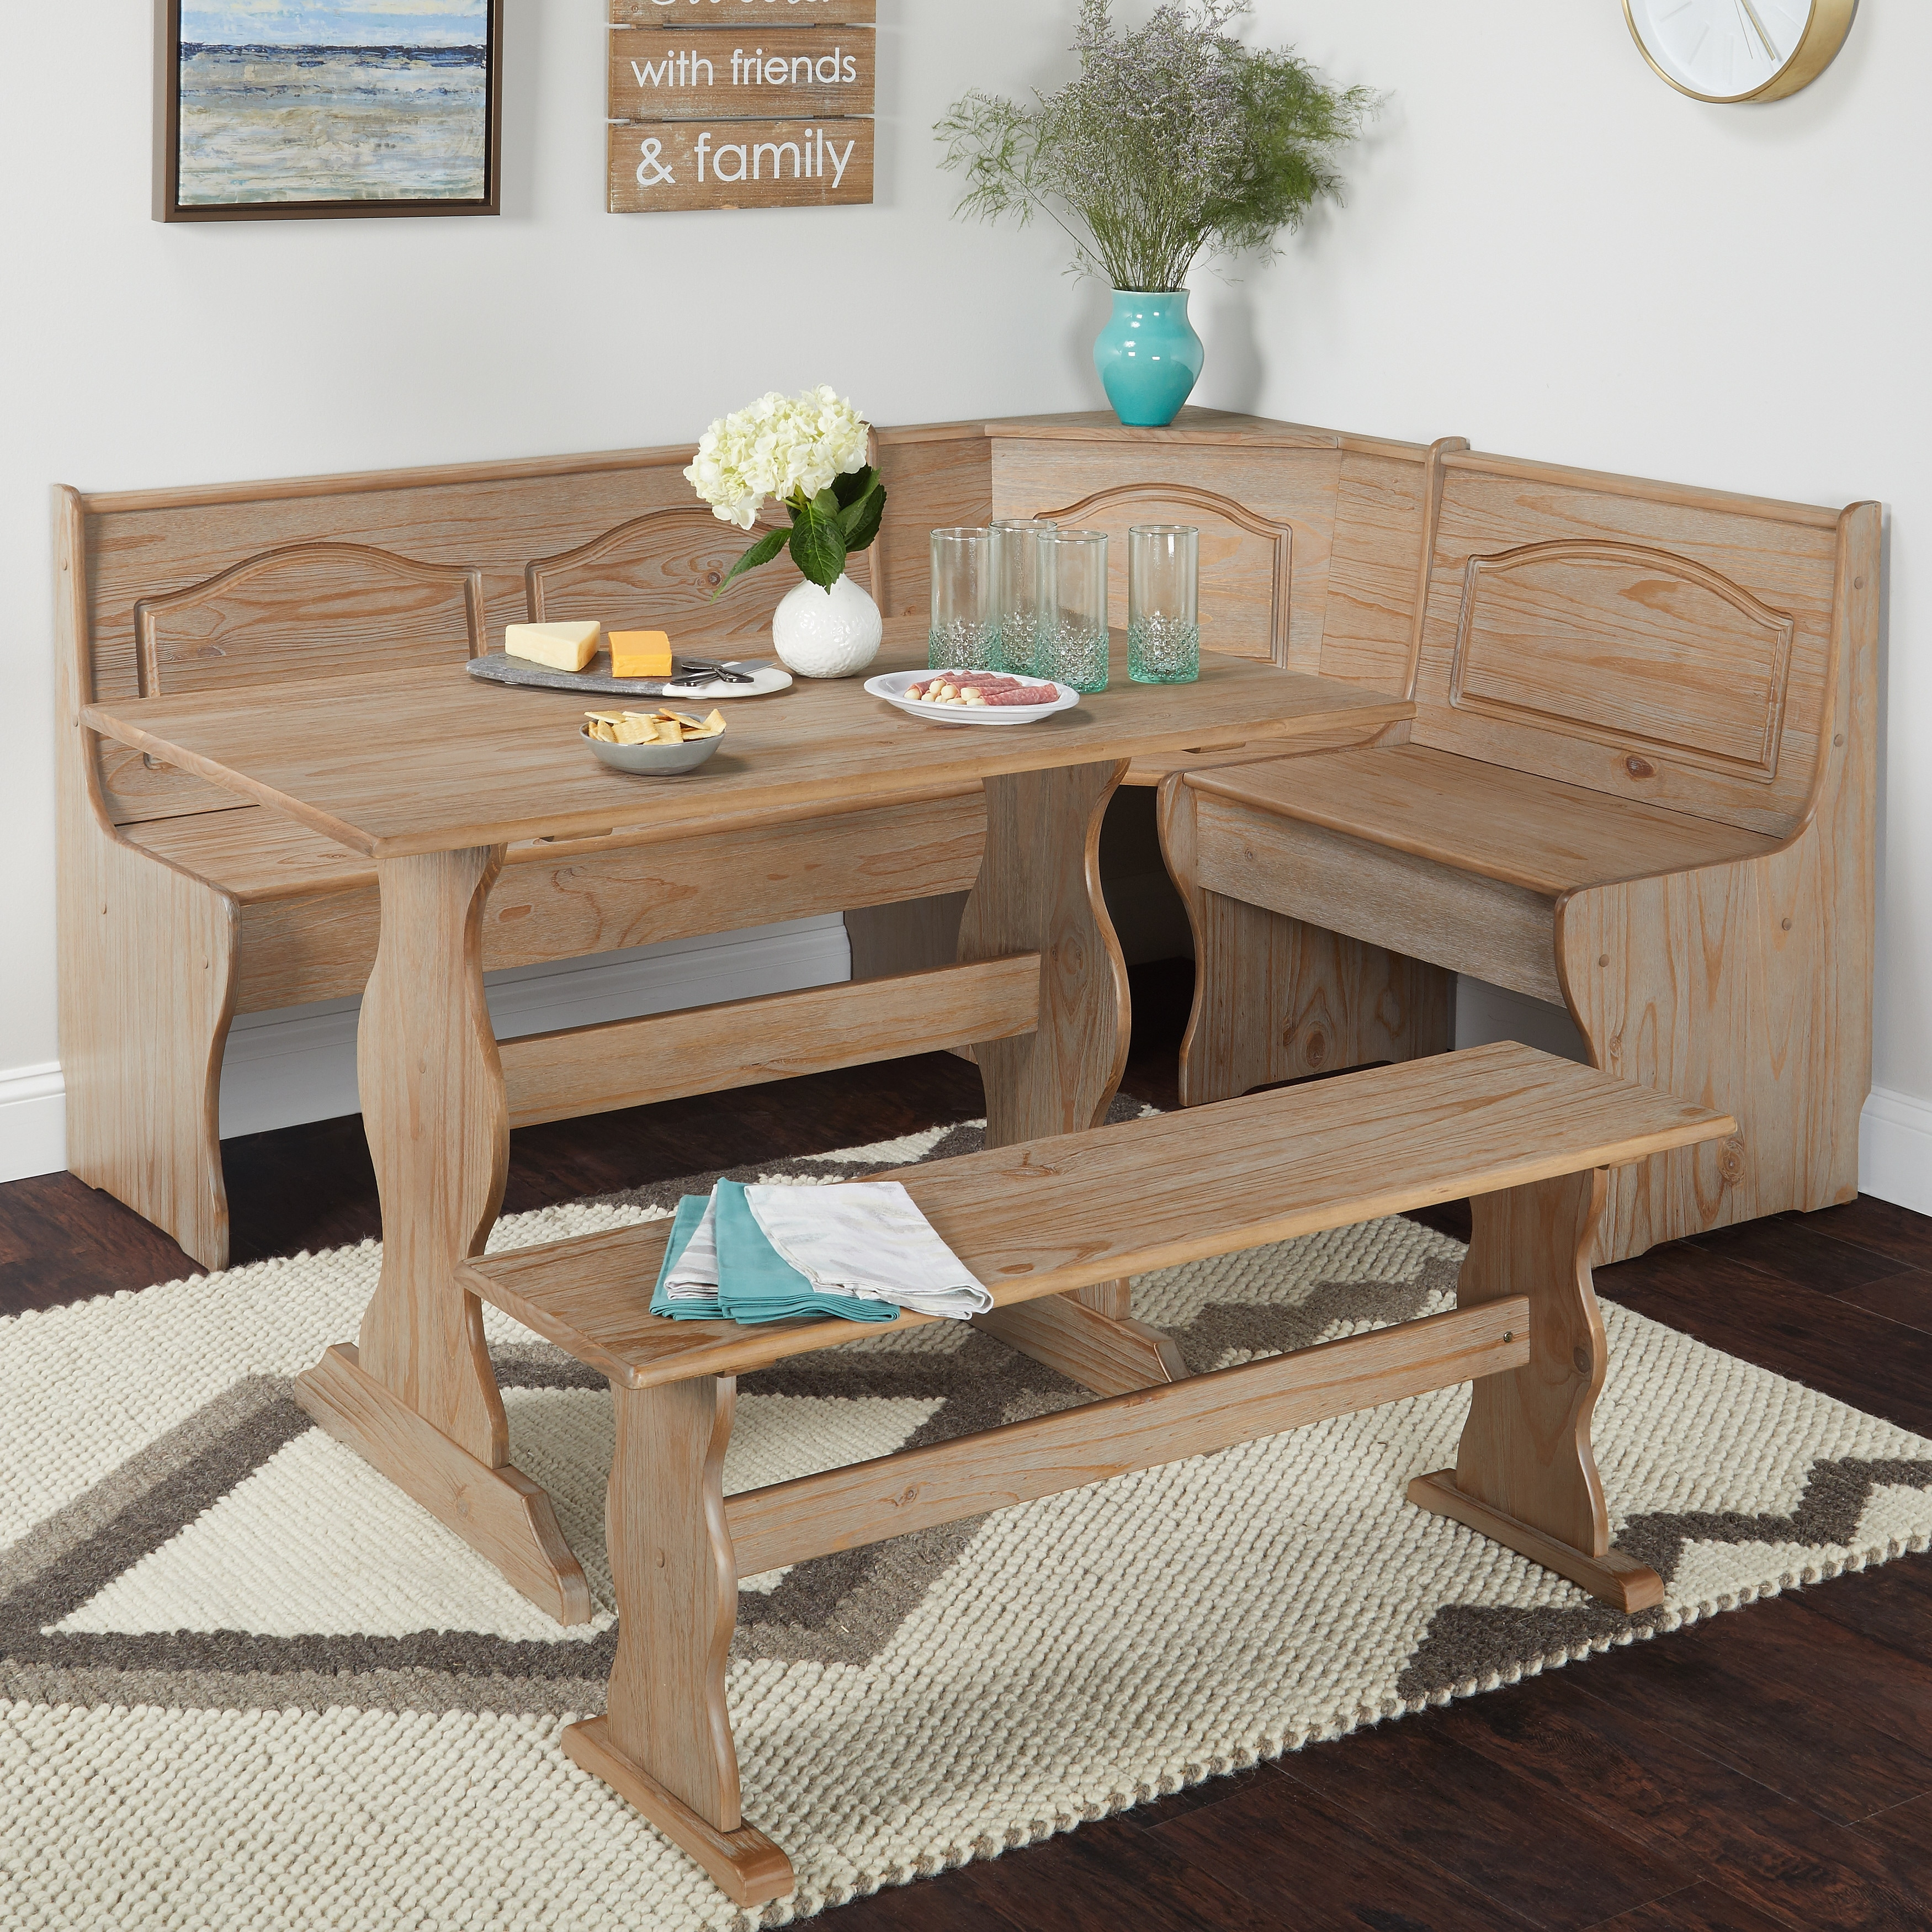 Picture of: Simple Living Knox Nook Dining Set On Sale Overstock 20004658